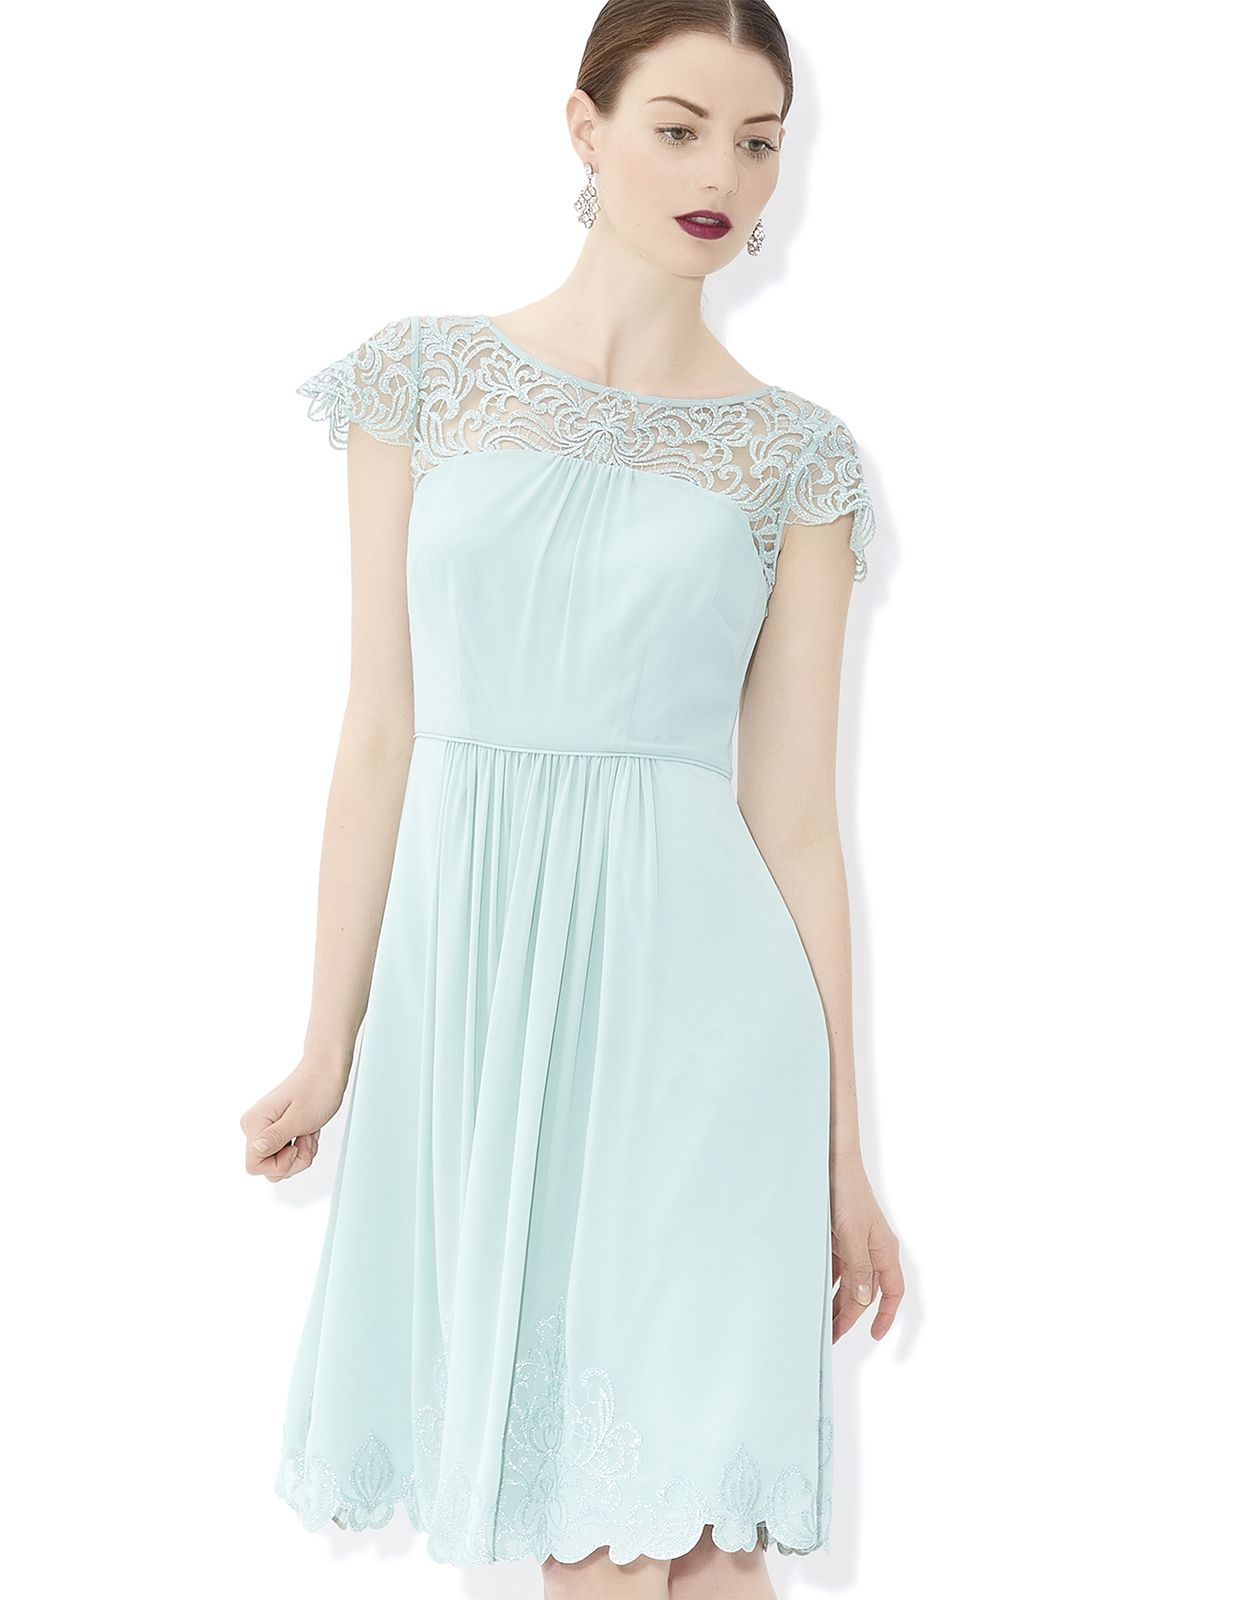 Vicky embroidered dress green monsoon sale 60 valentines fresh and pretty check out our pick of the best mint bridesmaid dresses available online and in stores now ombrellifo Choice Image